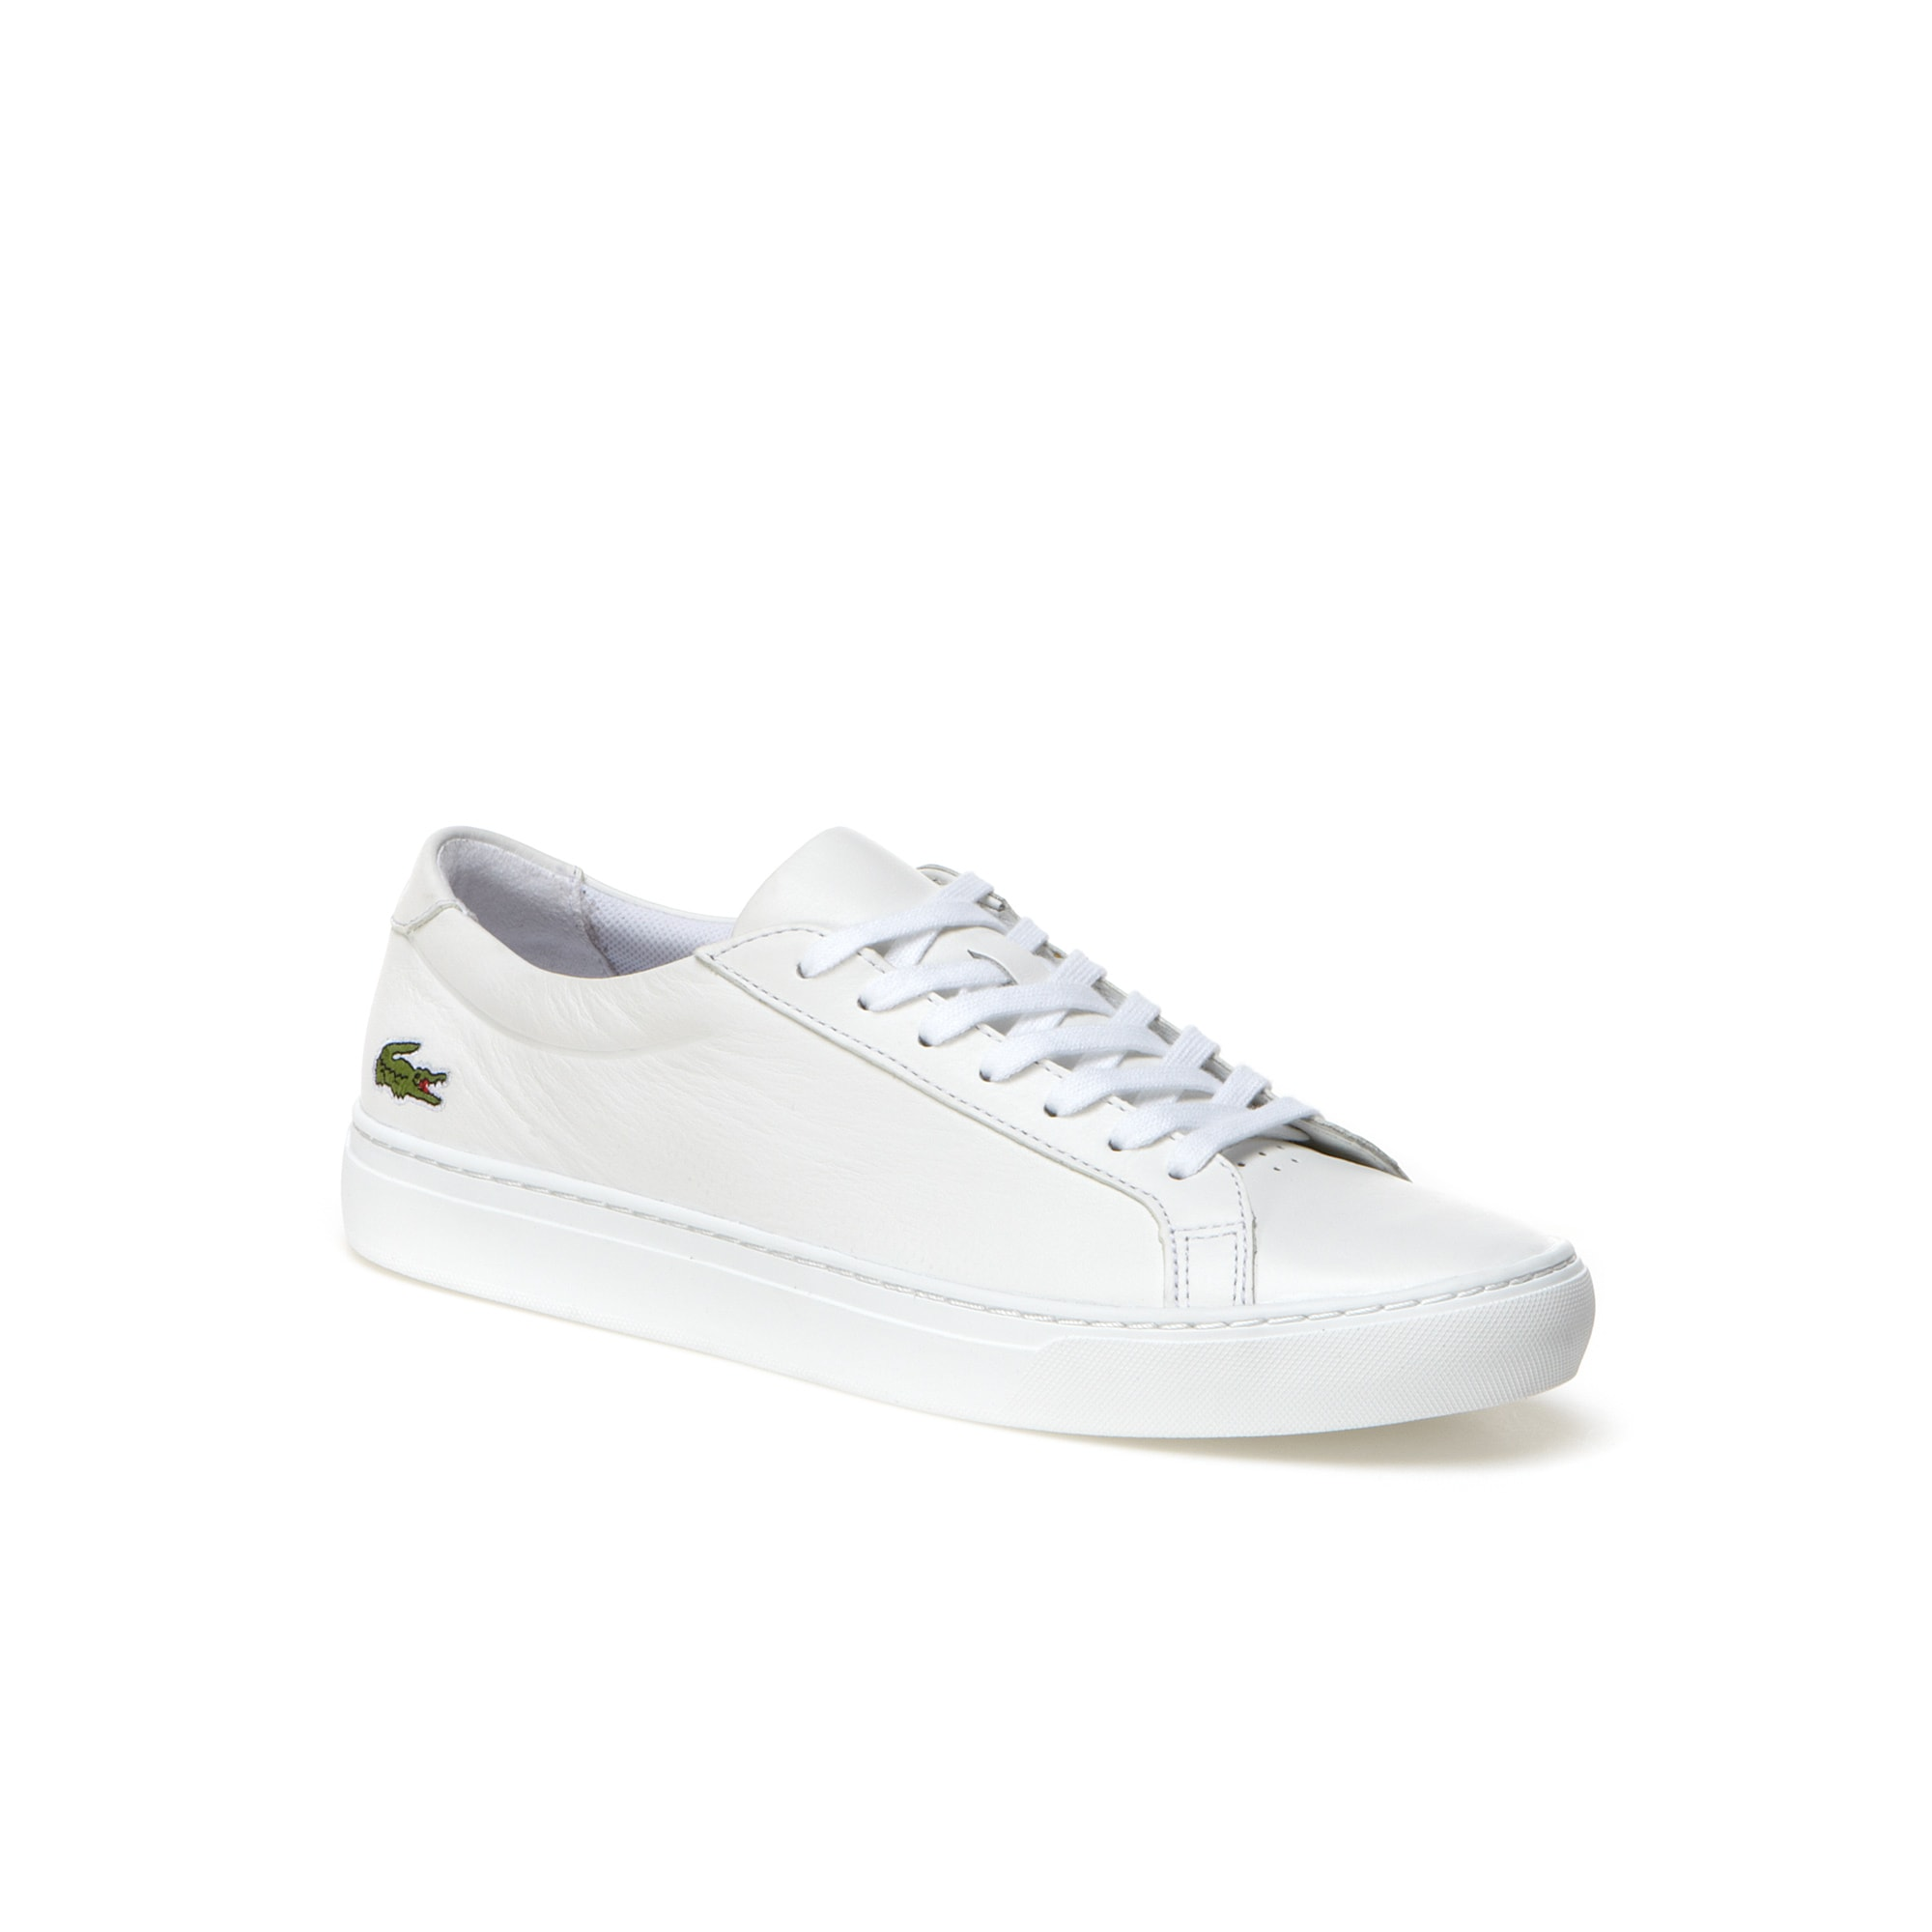 4945800df9a1 All Lacoste Shoes